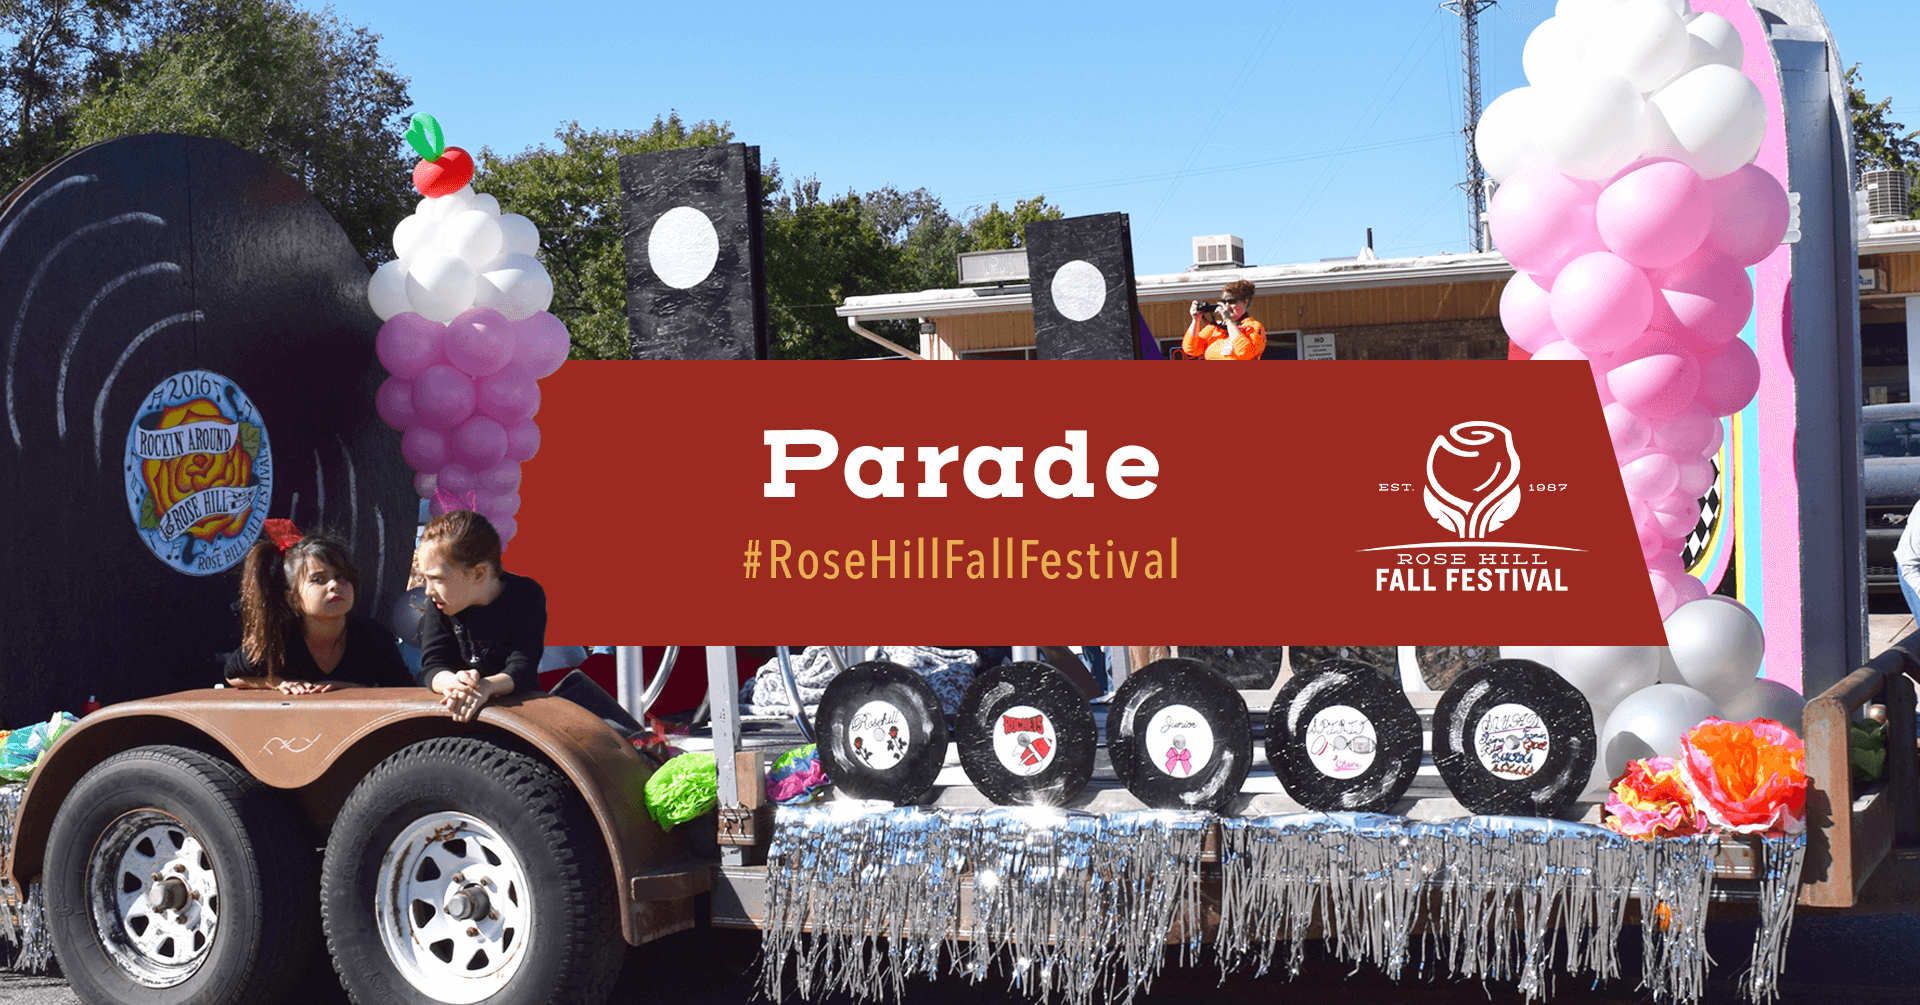 Parade / Float Competition